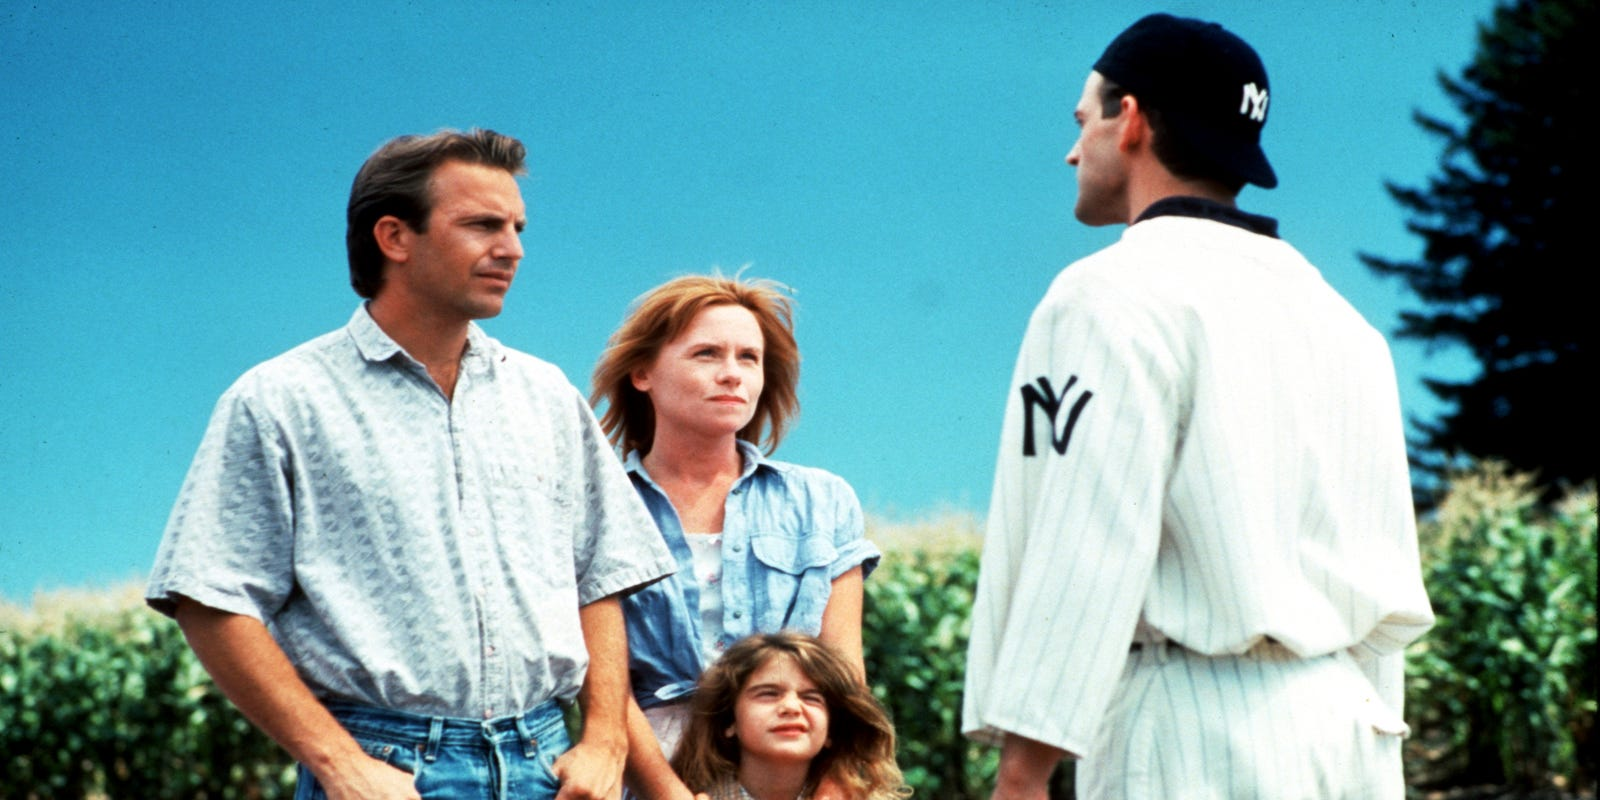 Actor Nick Offerman airs his list of 'ridiculous things' about 'Field of Dreams'